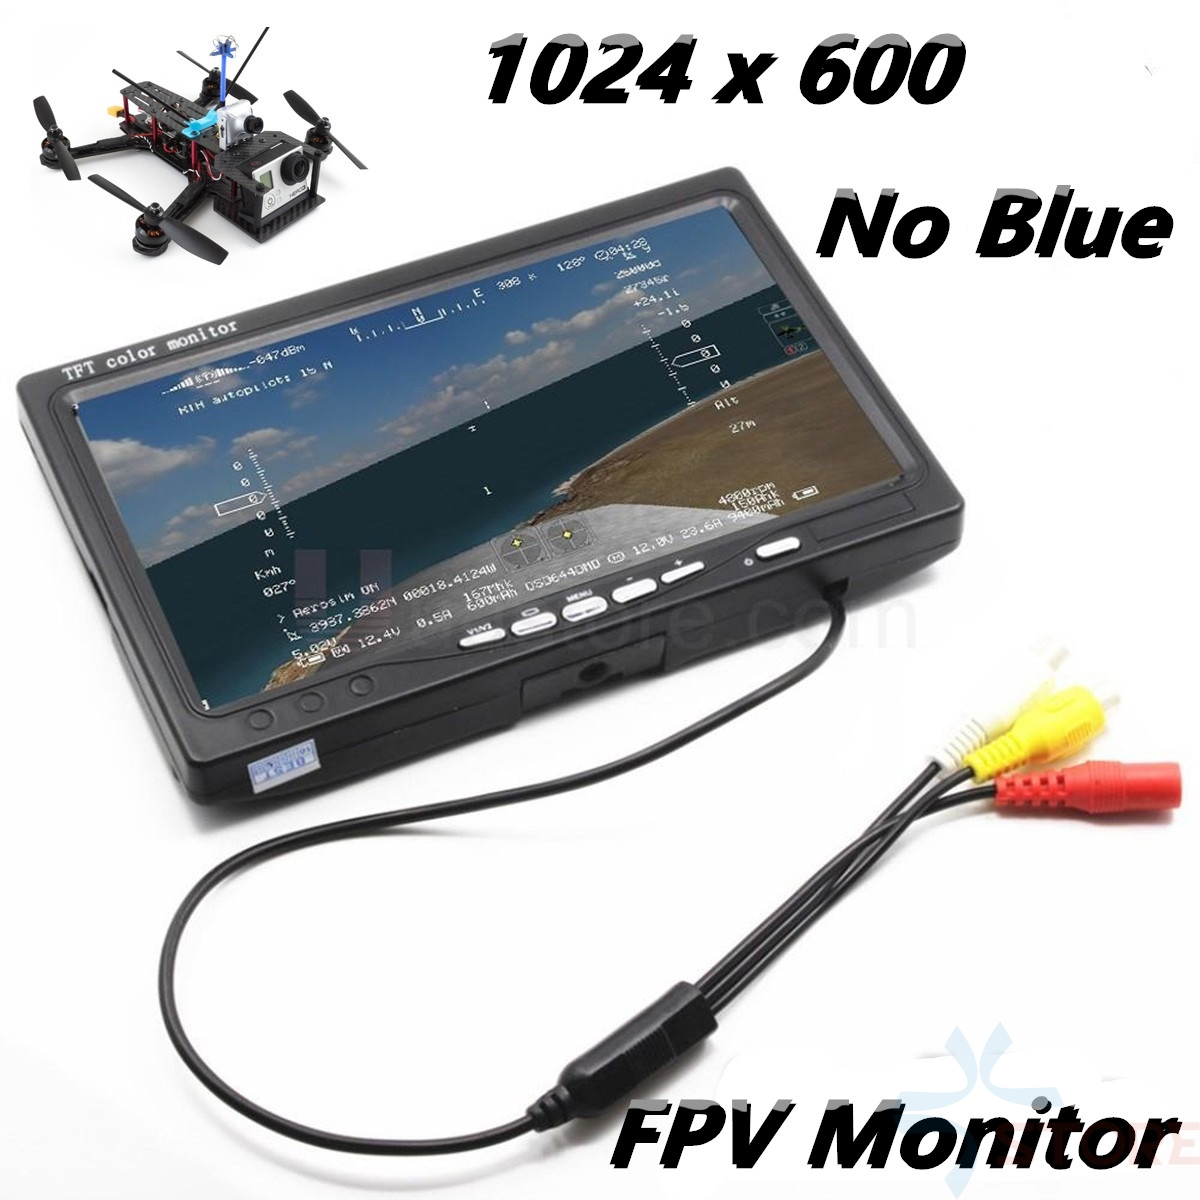 7 zoll LCD TFT FPV Monitor 1024x600 w/T Screen Keine blau FPV Monitor Photography für Bodenstation Phantom RC Modell QAV250